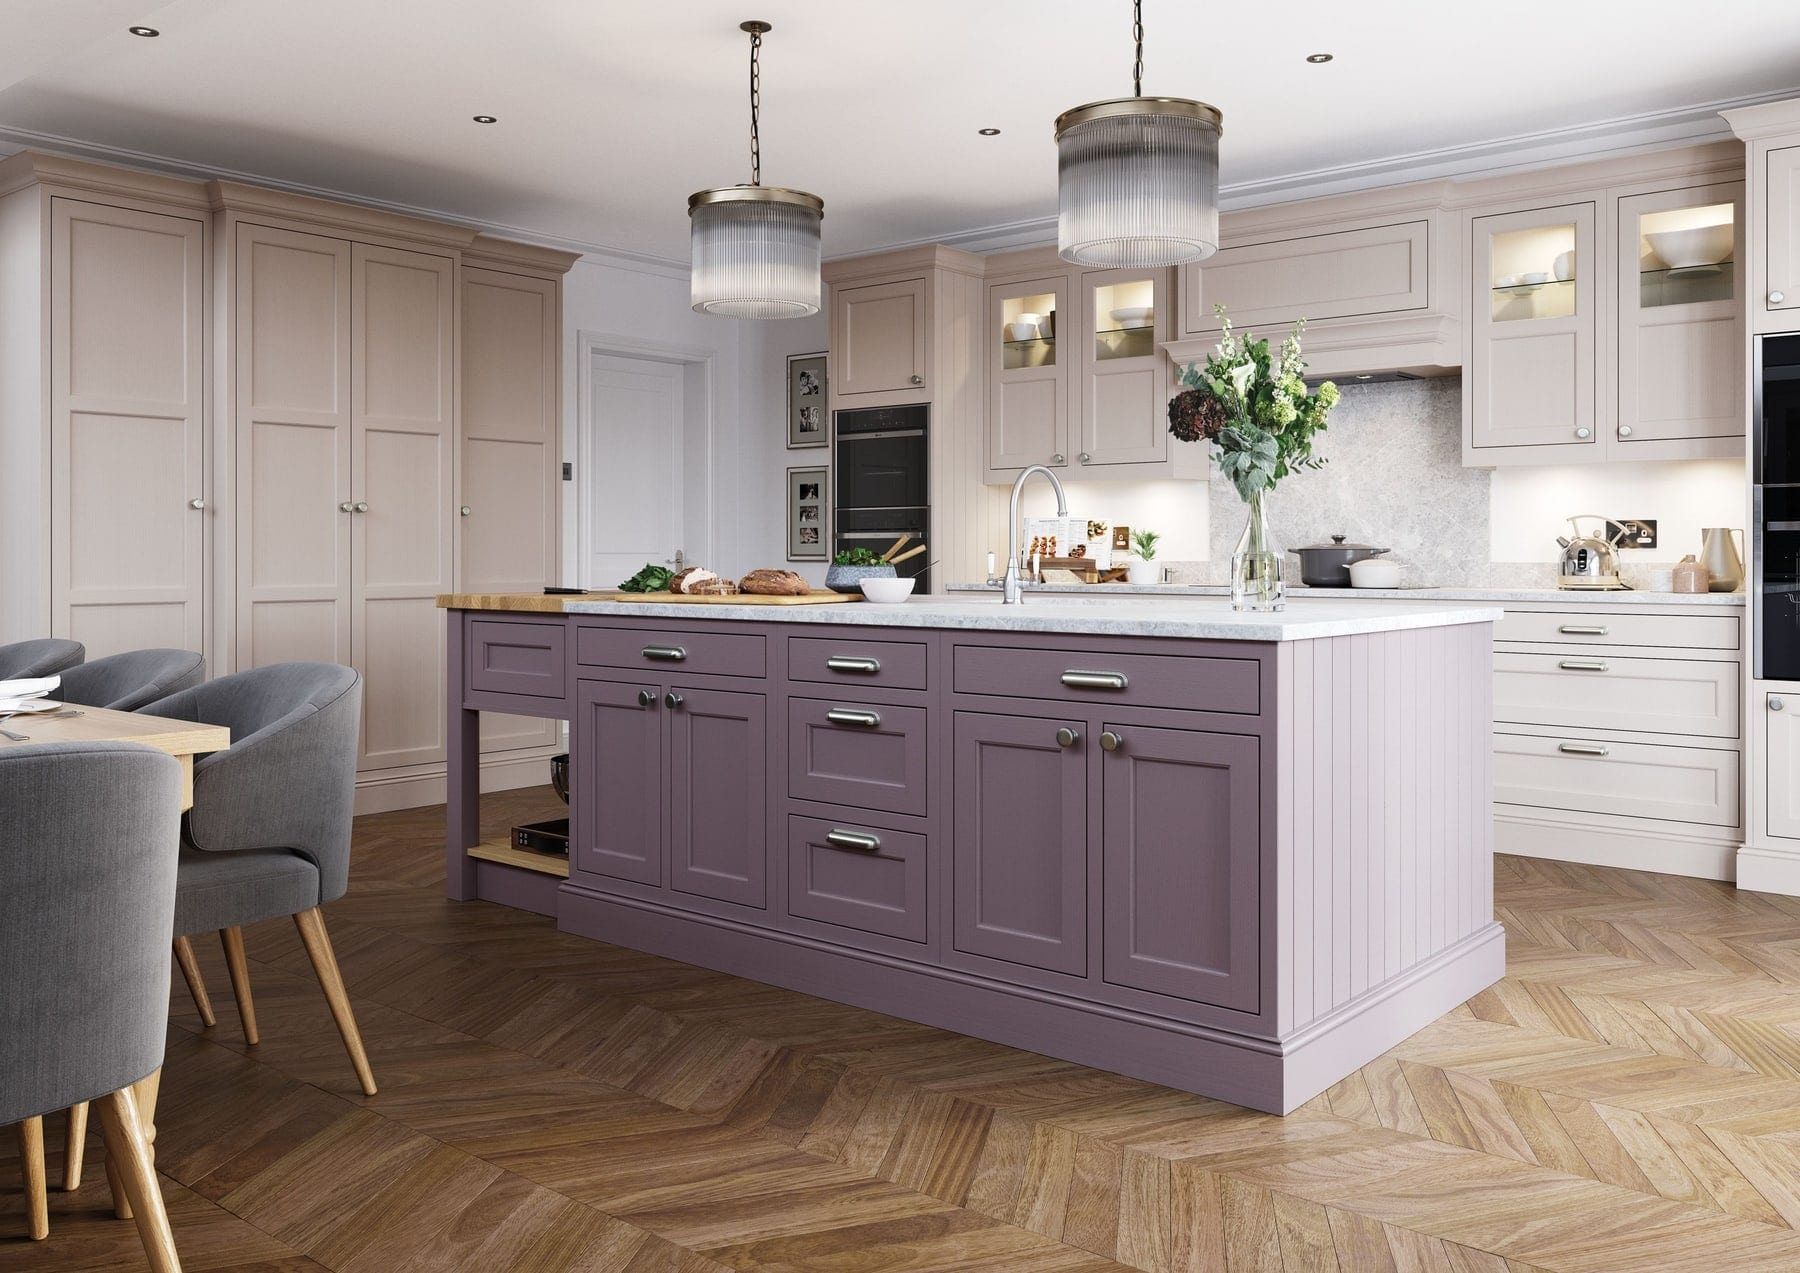 Belgravia Lavender Gray And Cashmere In Frame Shaker Kitchen With Island 1 | Colour House Interiors, Caterham